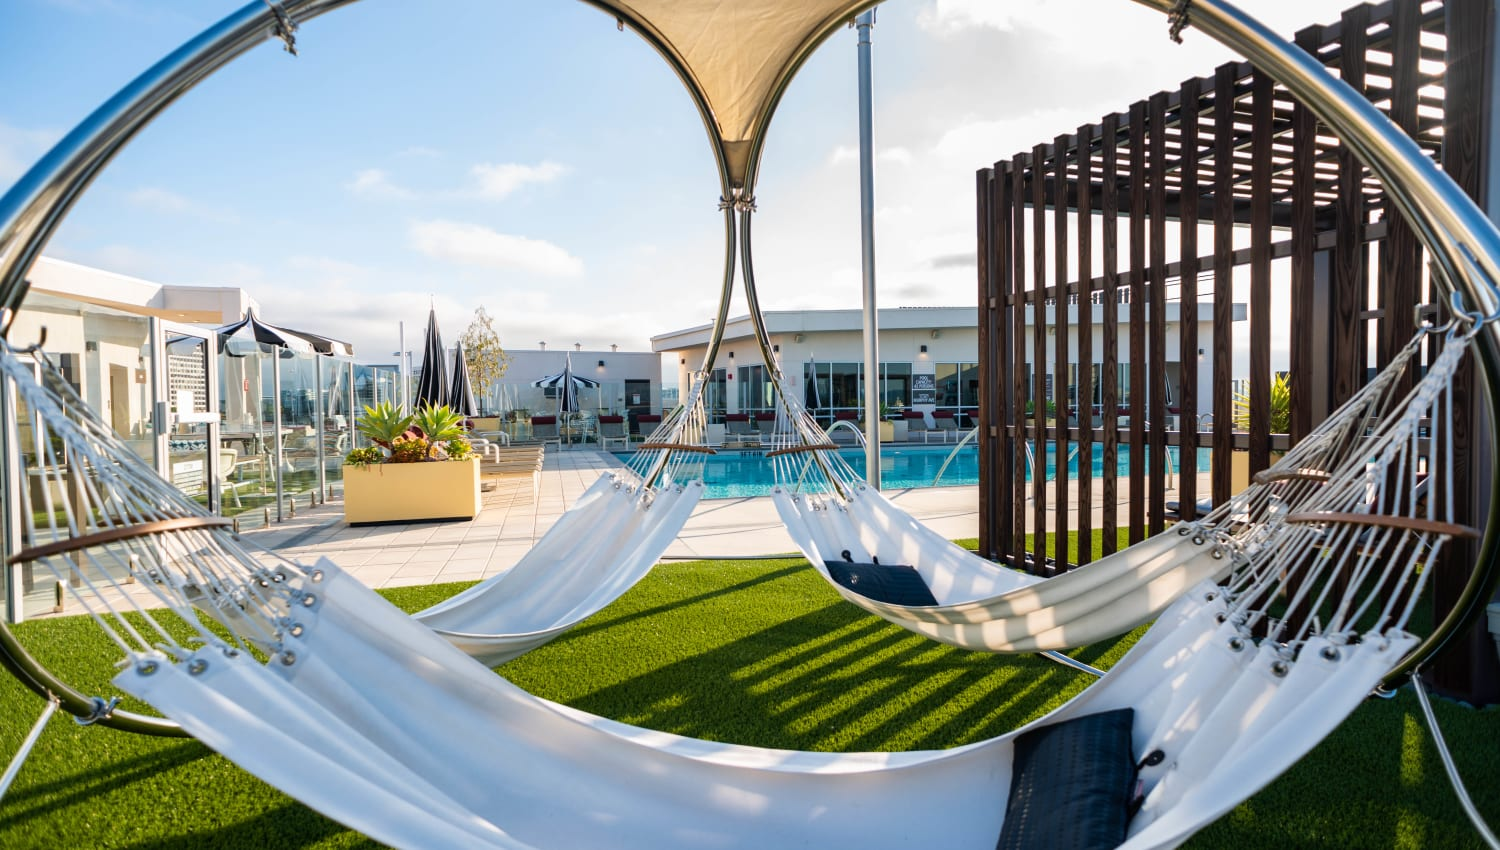 Shaded hammocks near the rooftop swimming pool at Fusion Apartments in Irvine, California